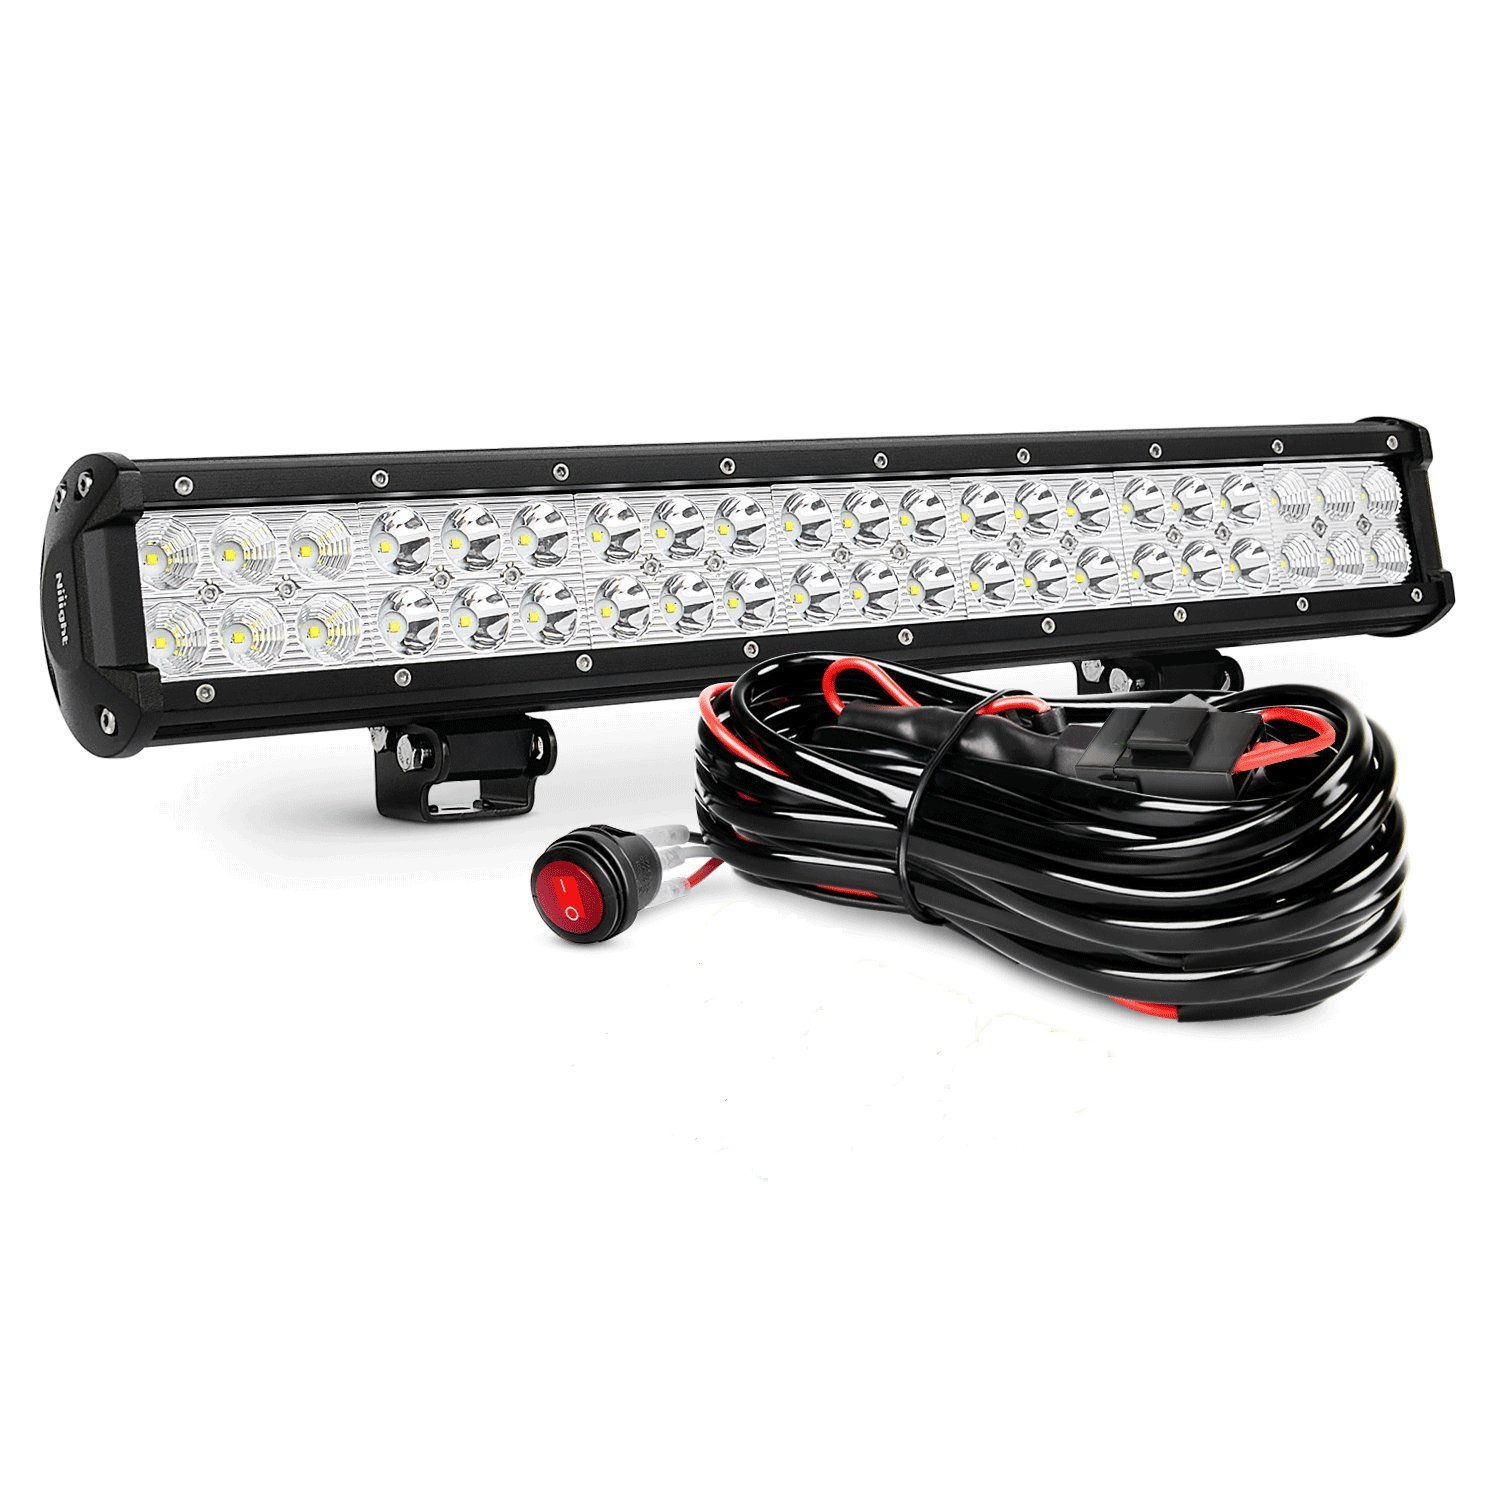 "Nilight ZH006 20"" 126W Spot Flood Combo LED Bar/Work Driving Light with Off Road Wiring Harness"